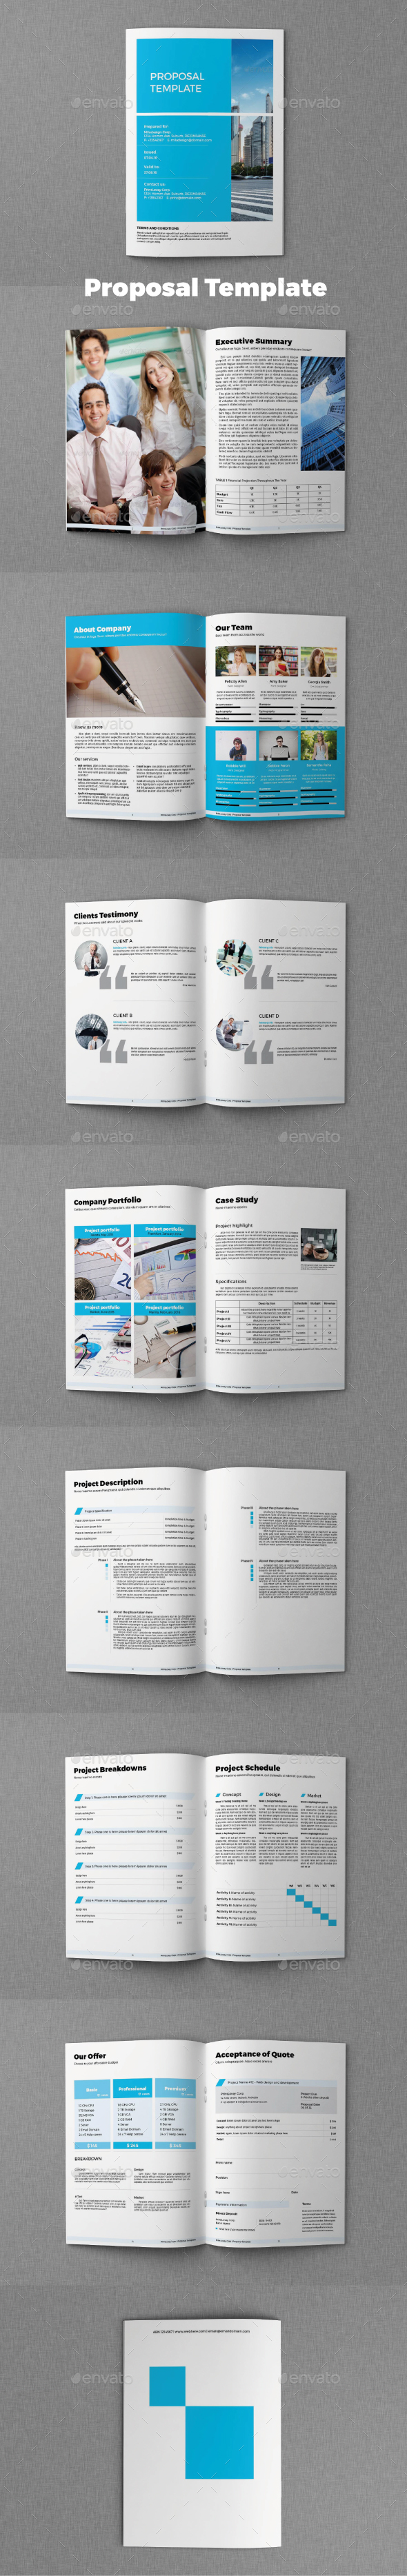 InDesign Proposal Graphics Designs Templates – Template for Proposal